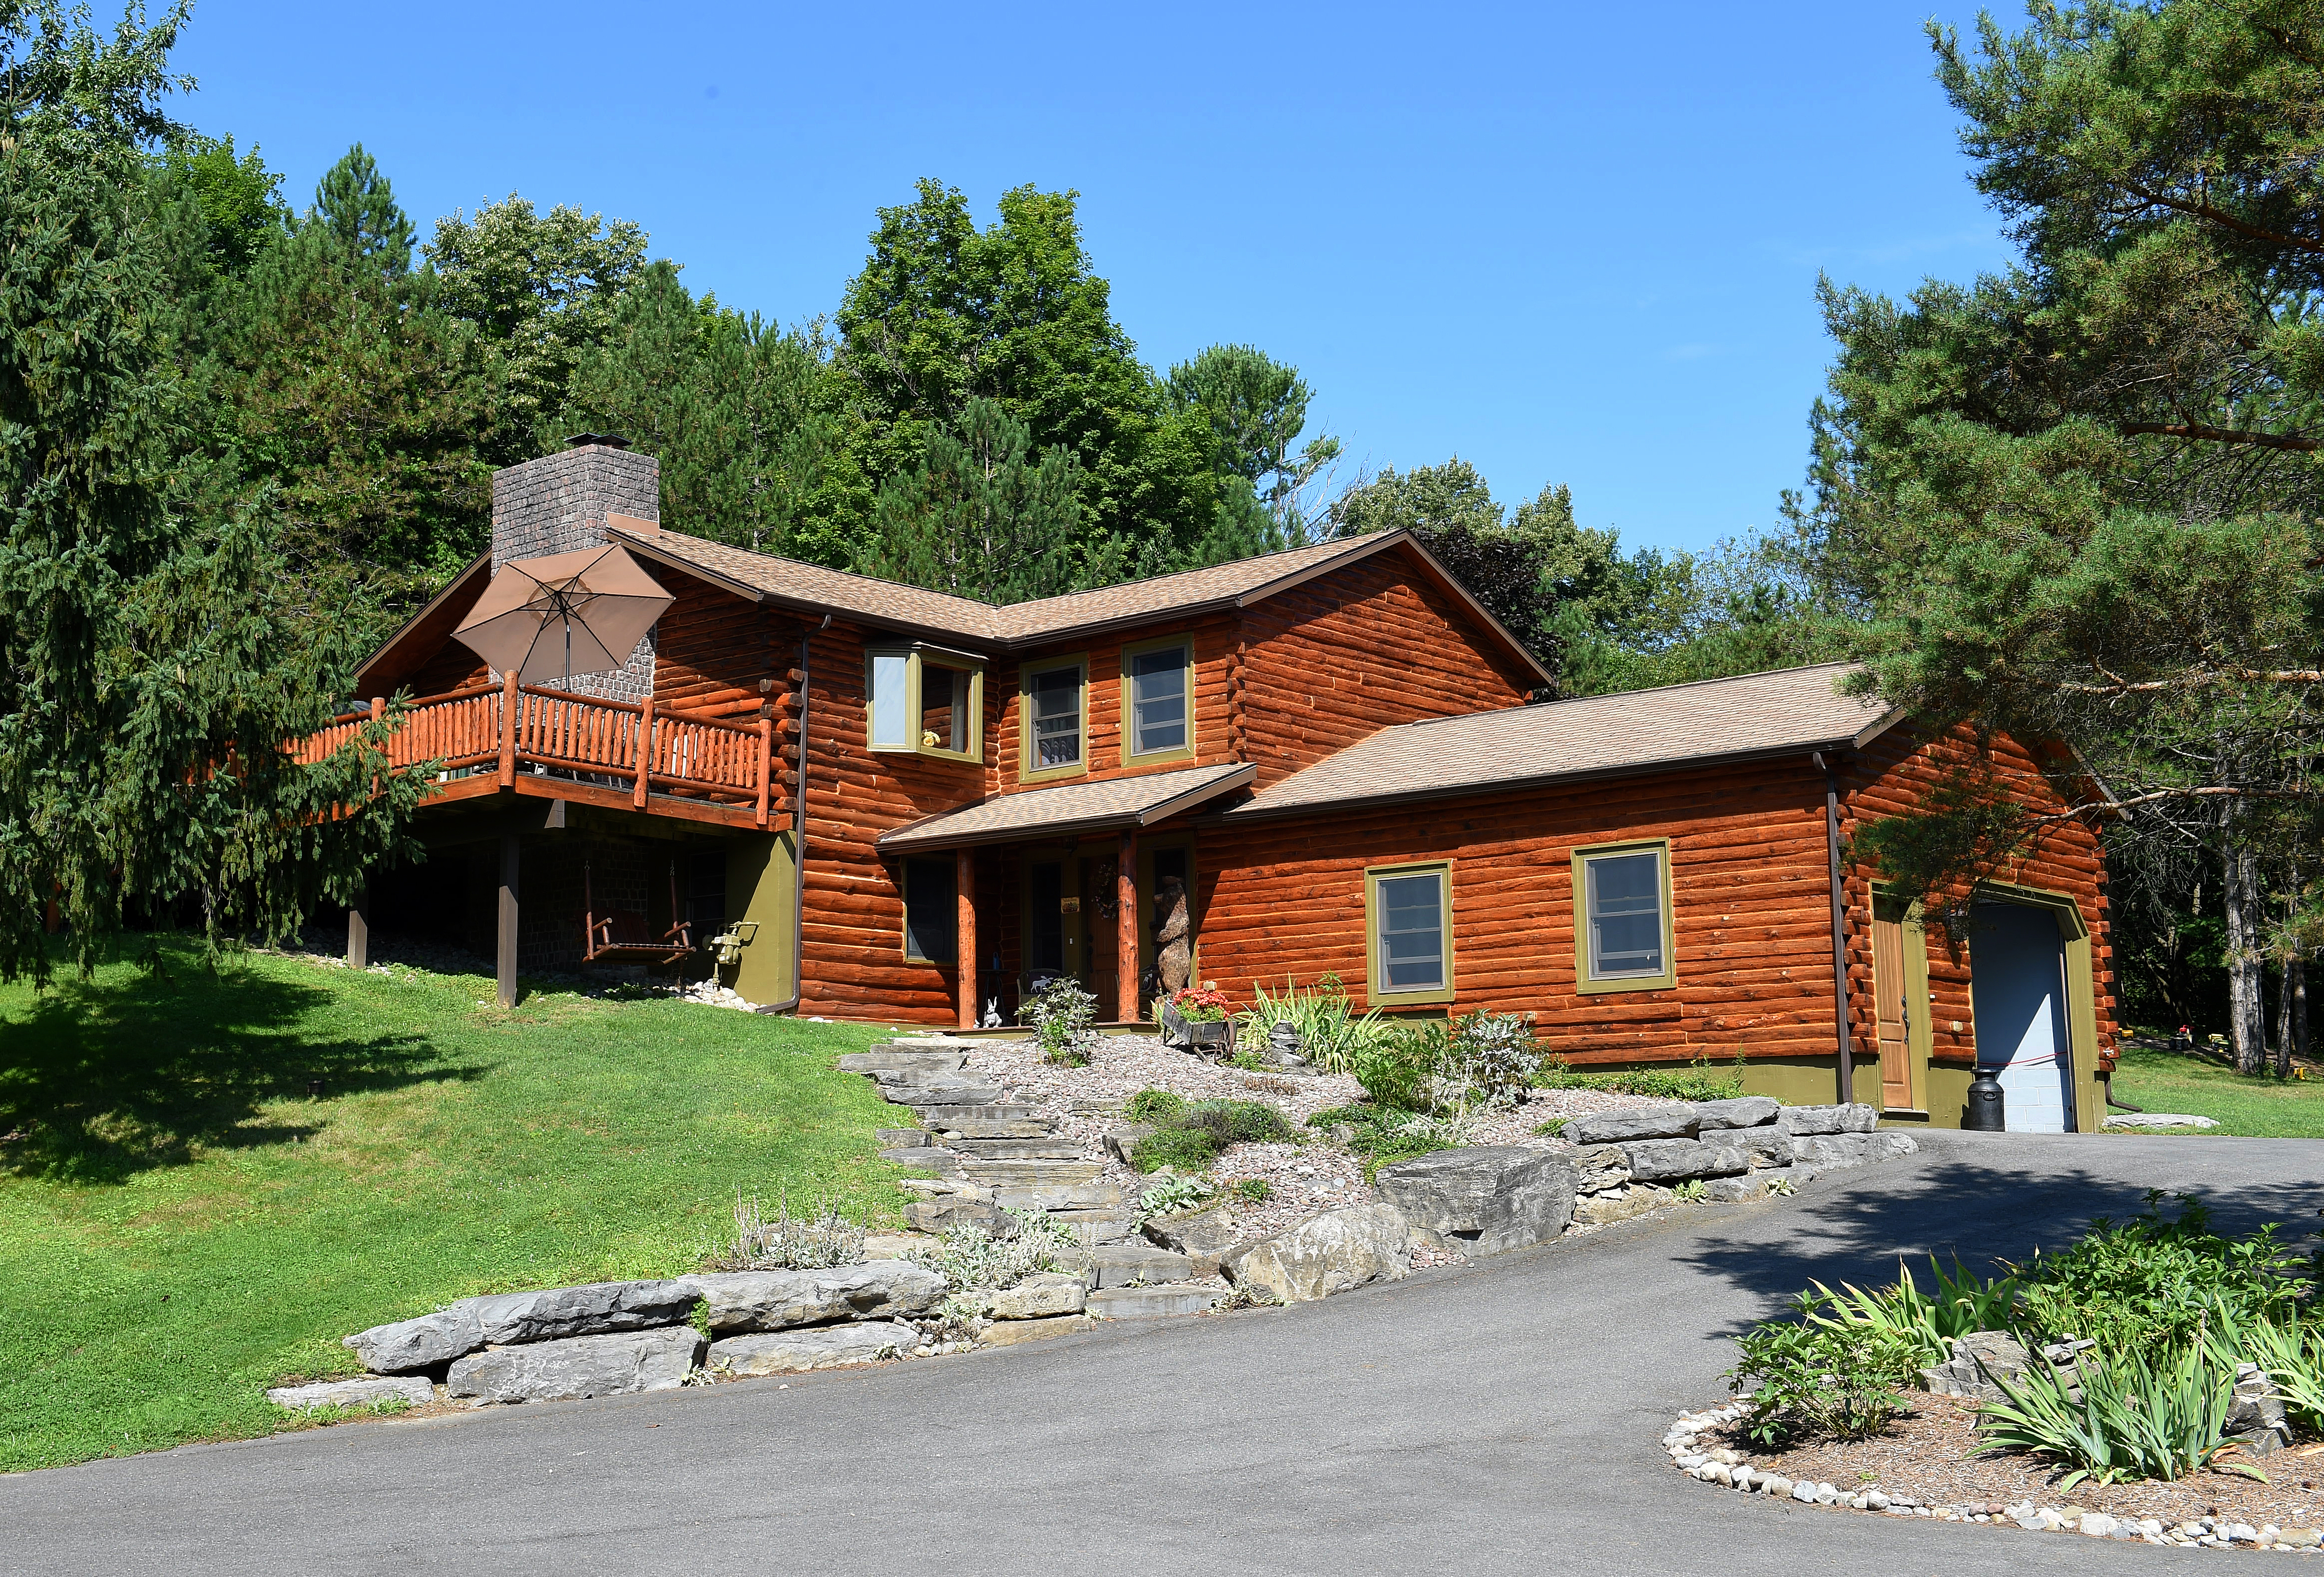 House of the Week: Taunton log cabin blends the rustic with the modern